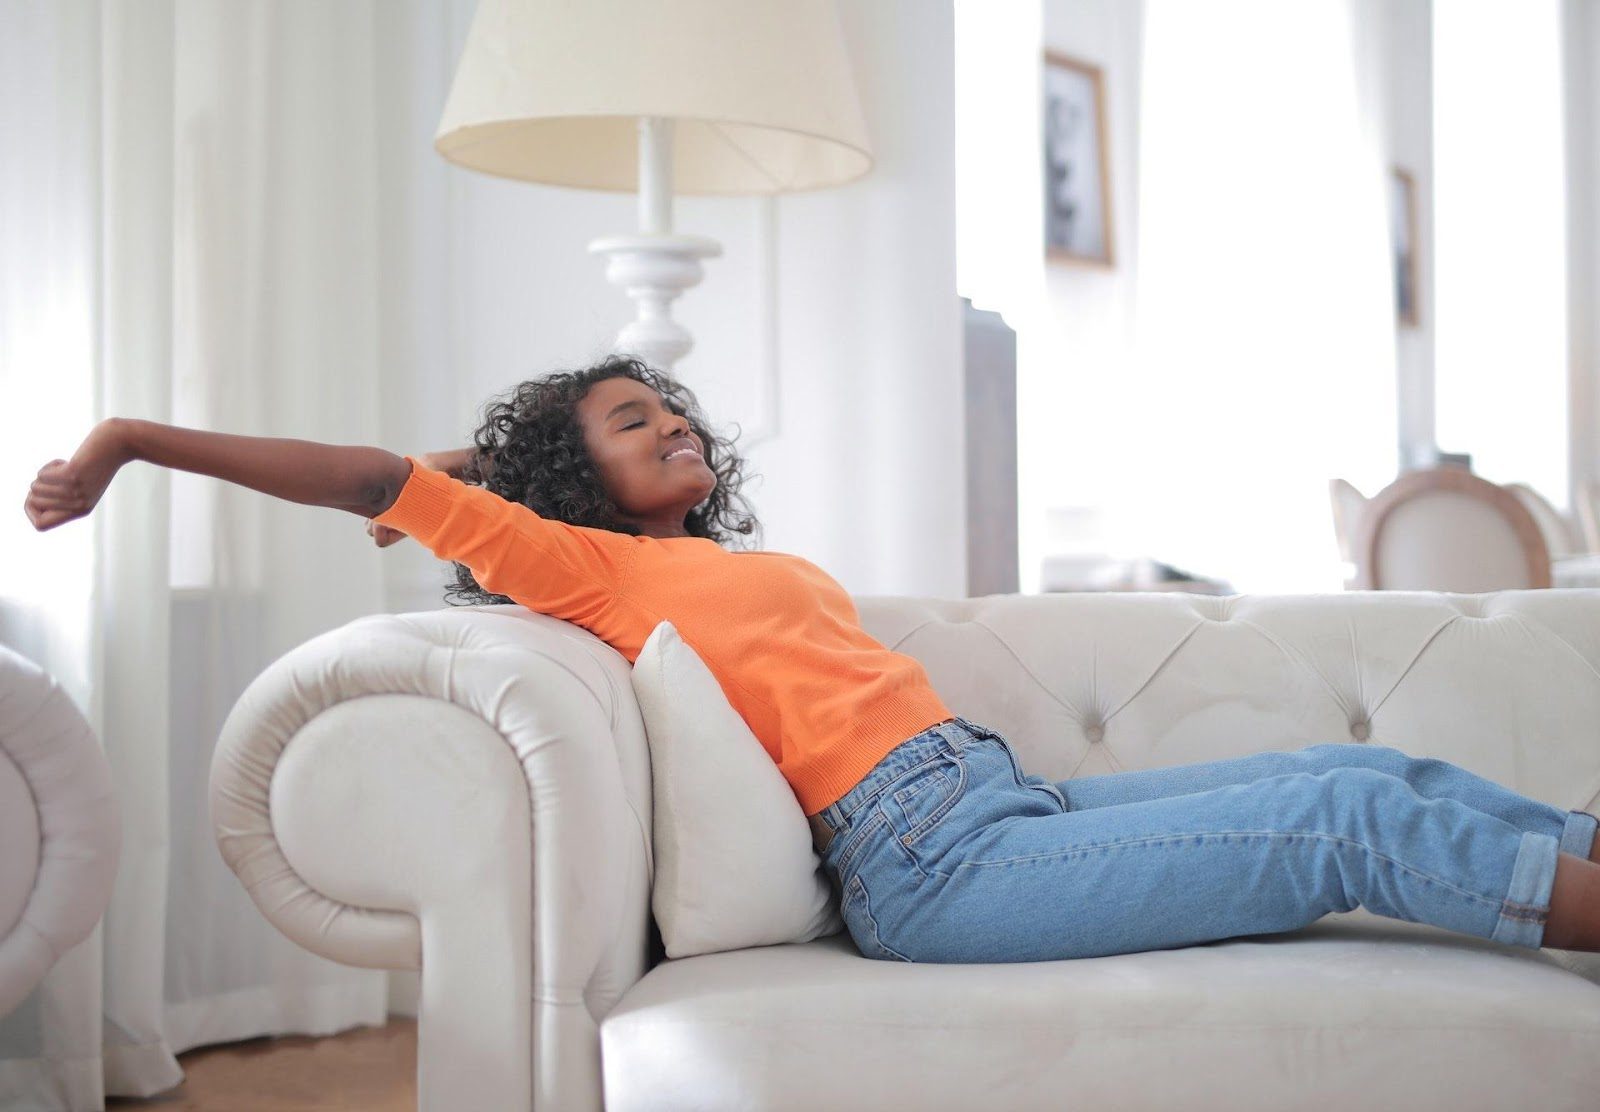 A woman sitting on a couch and smiling.